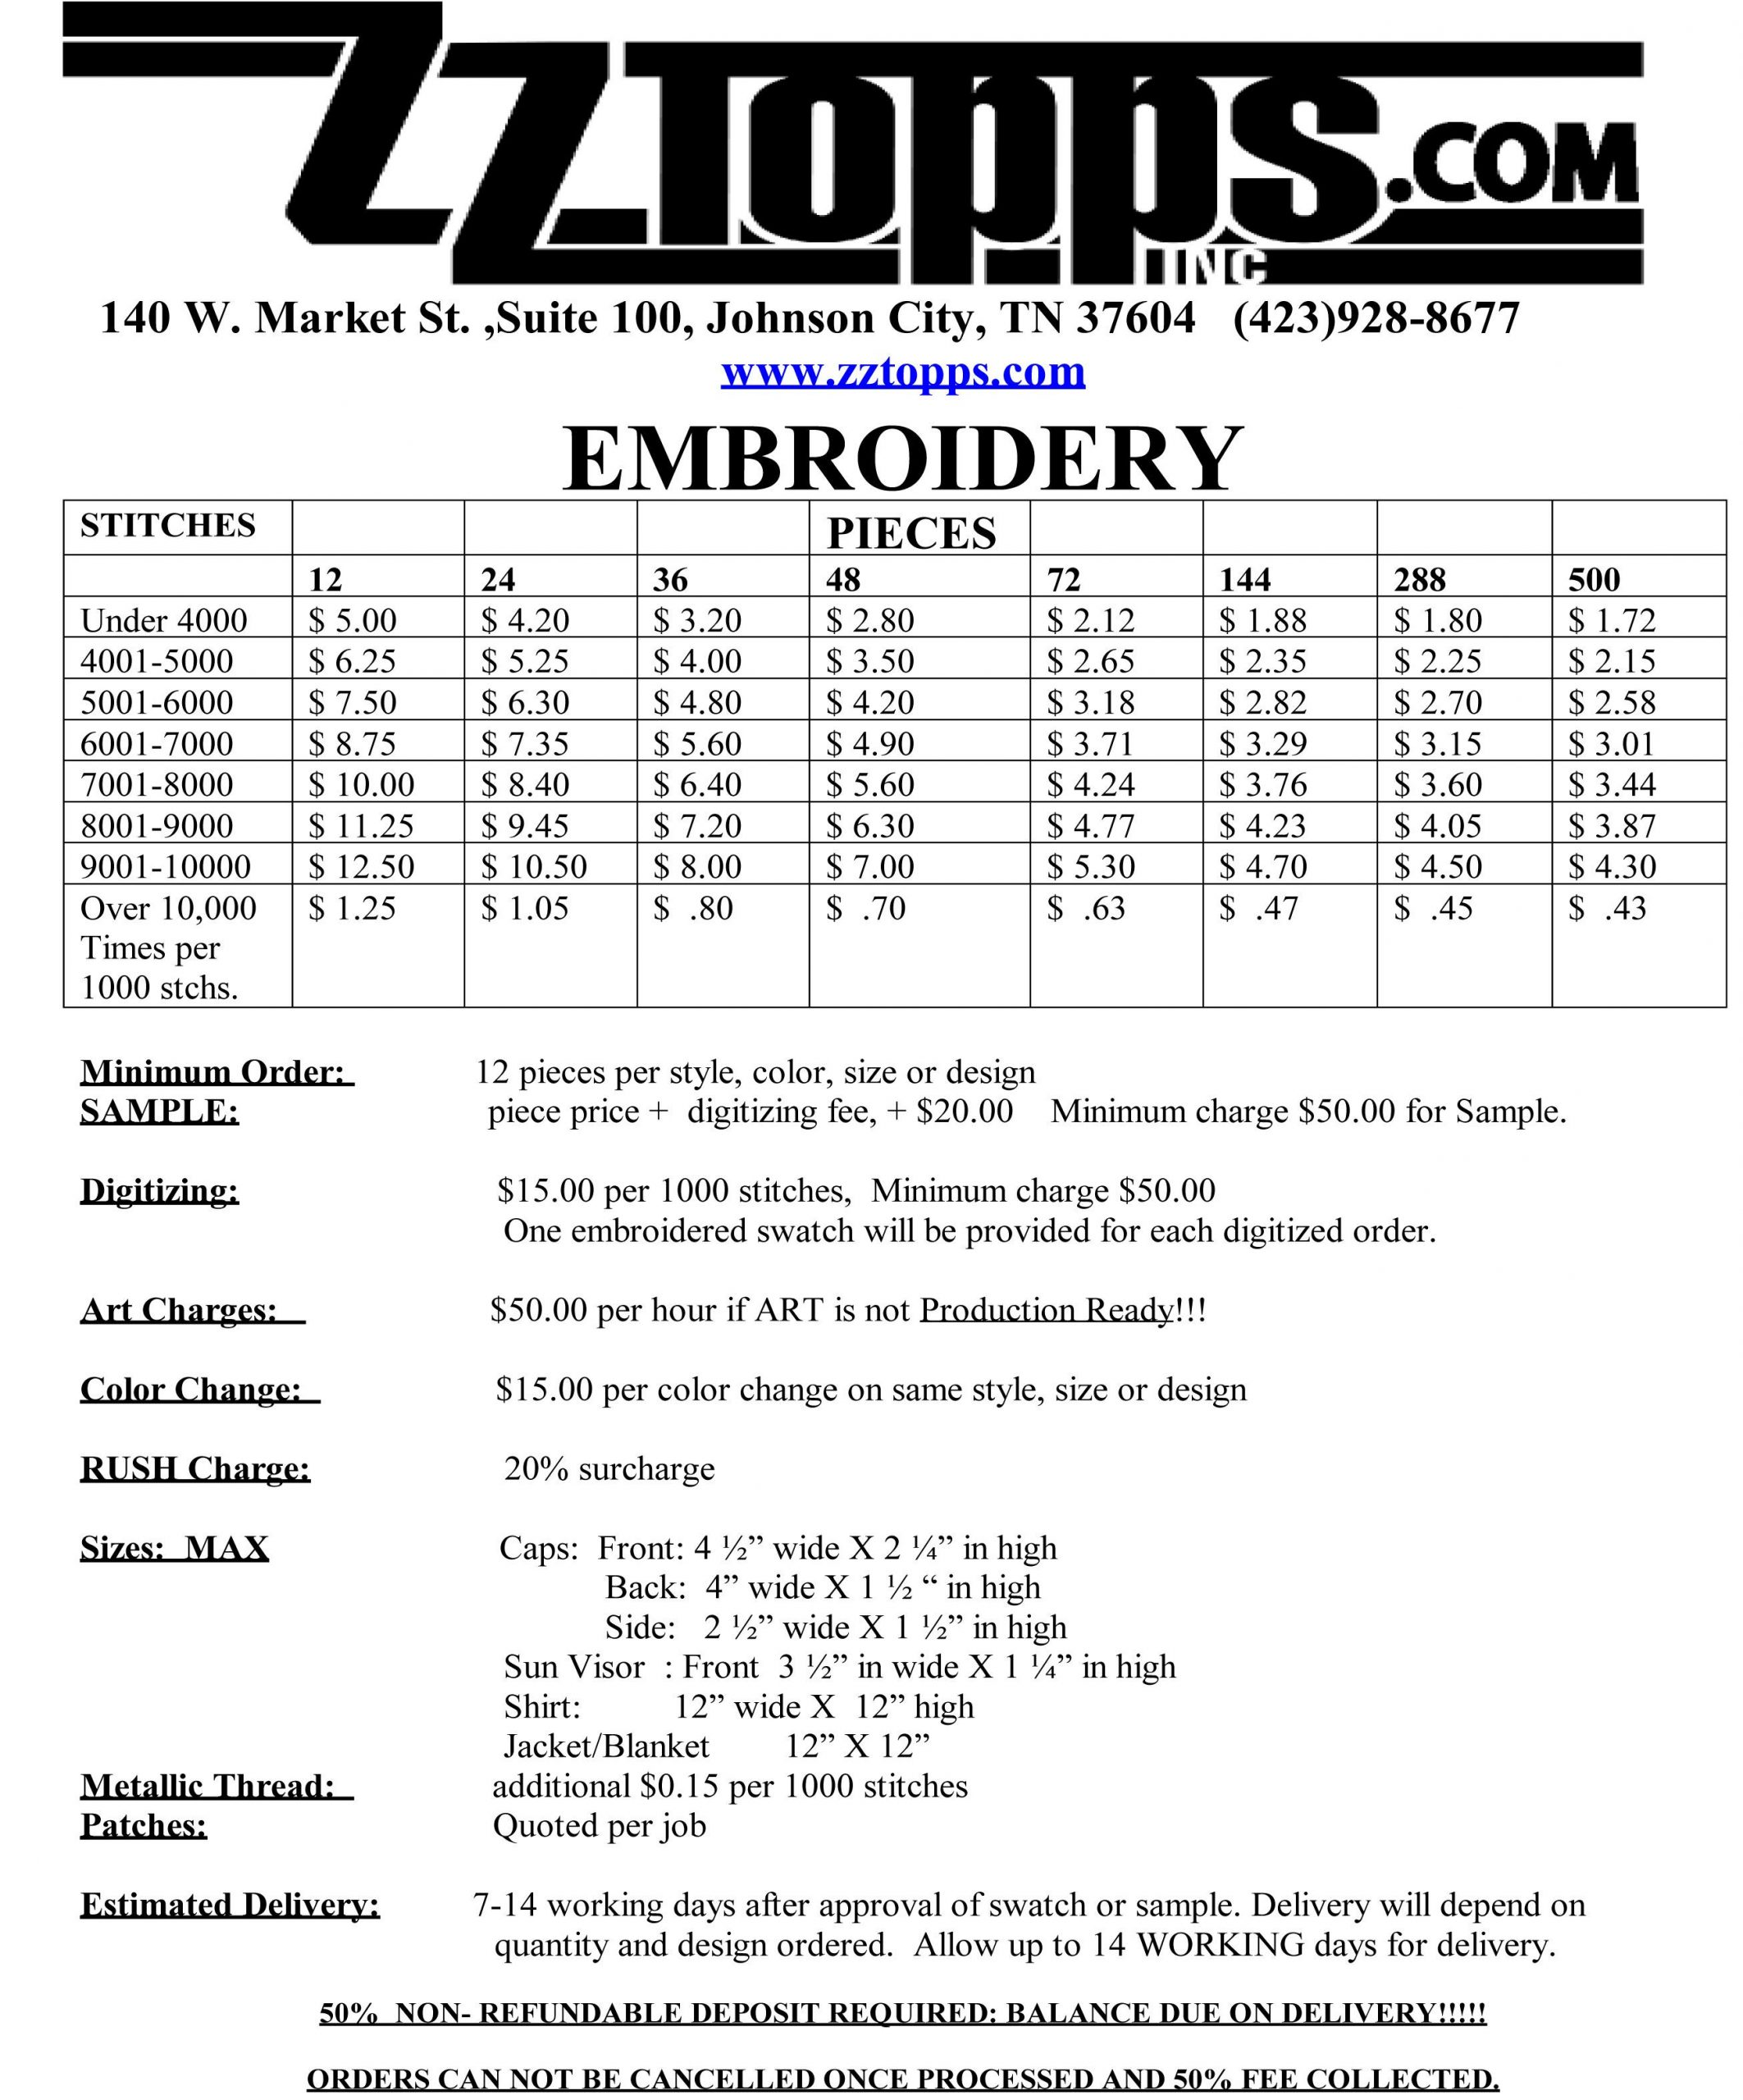 embroidery order form